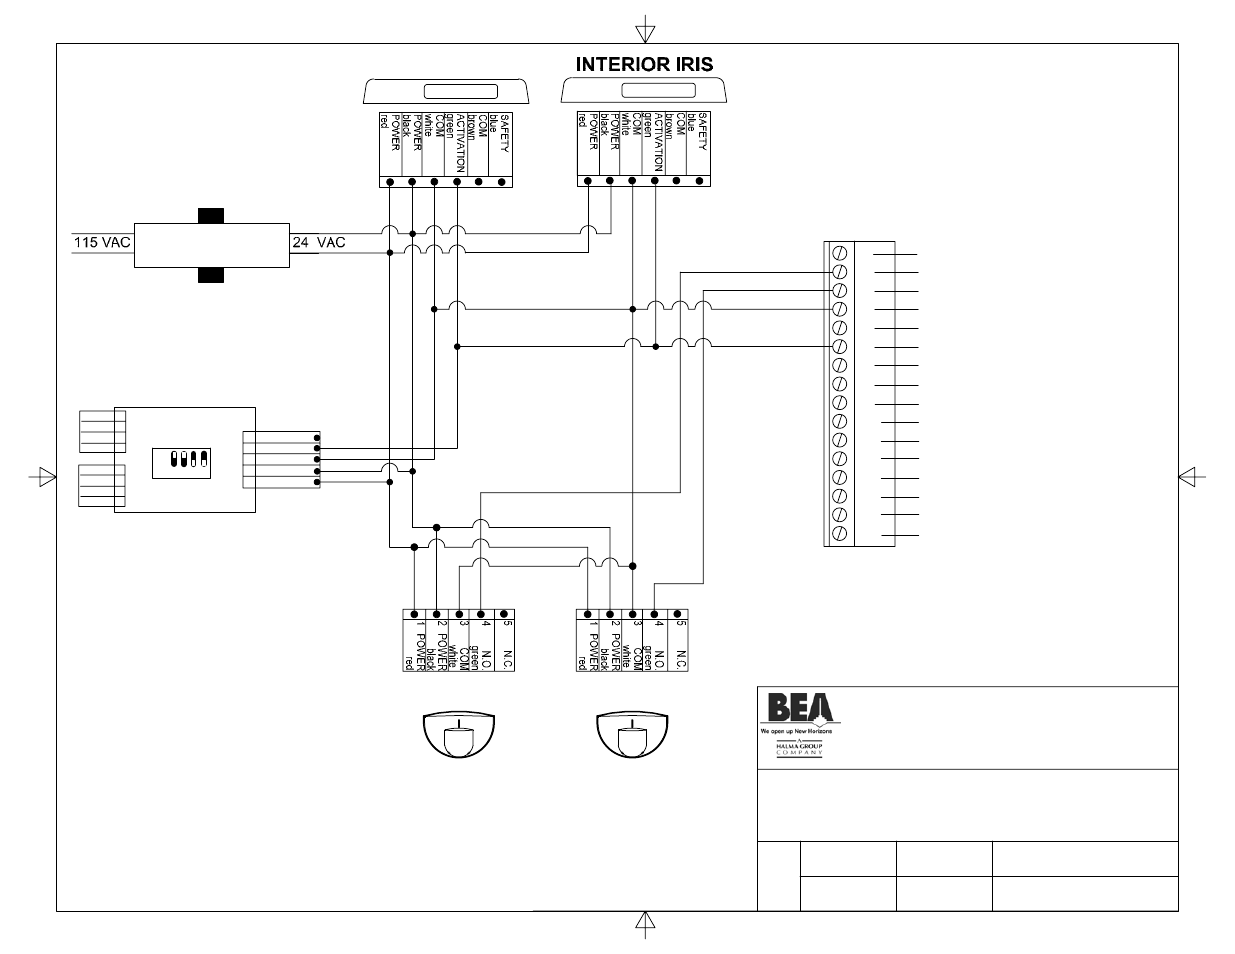 hight resolution of bea maglock wiring diagram wiring diagram centrebea maglock wiring diagram